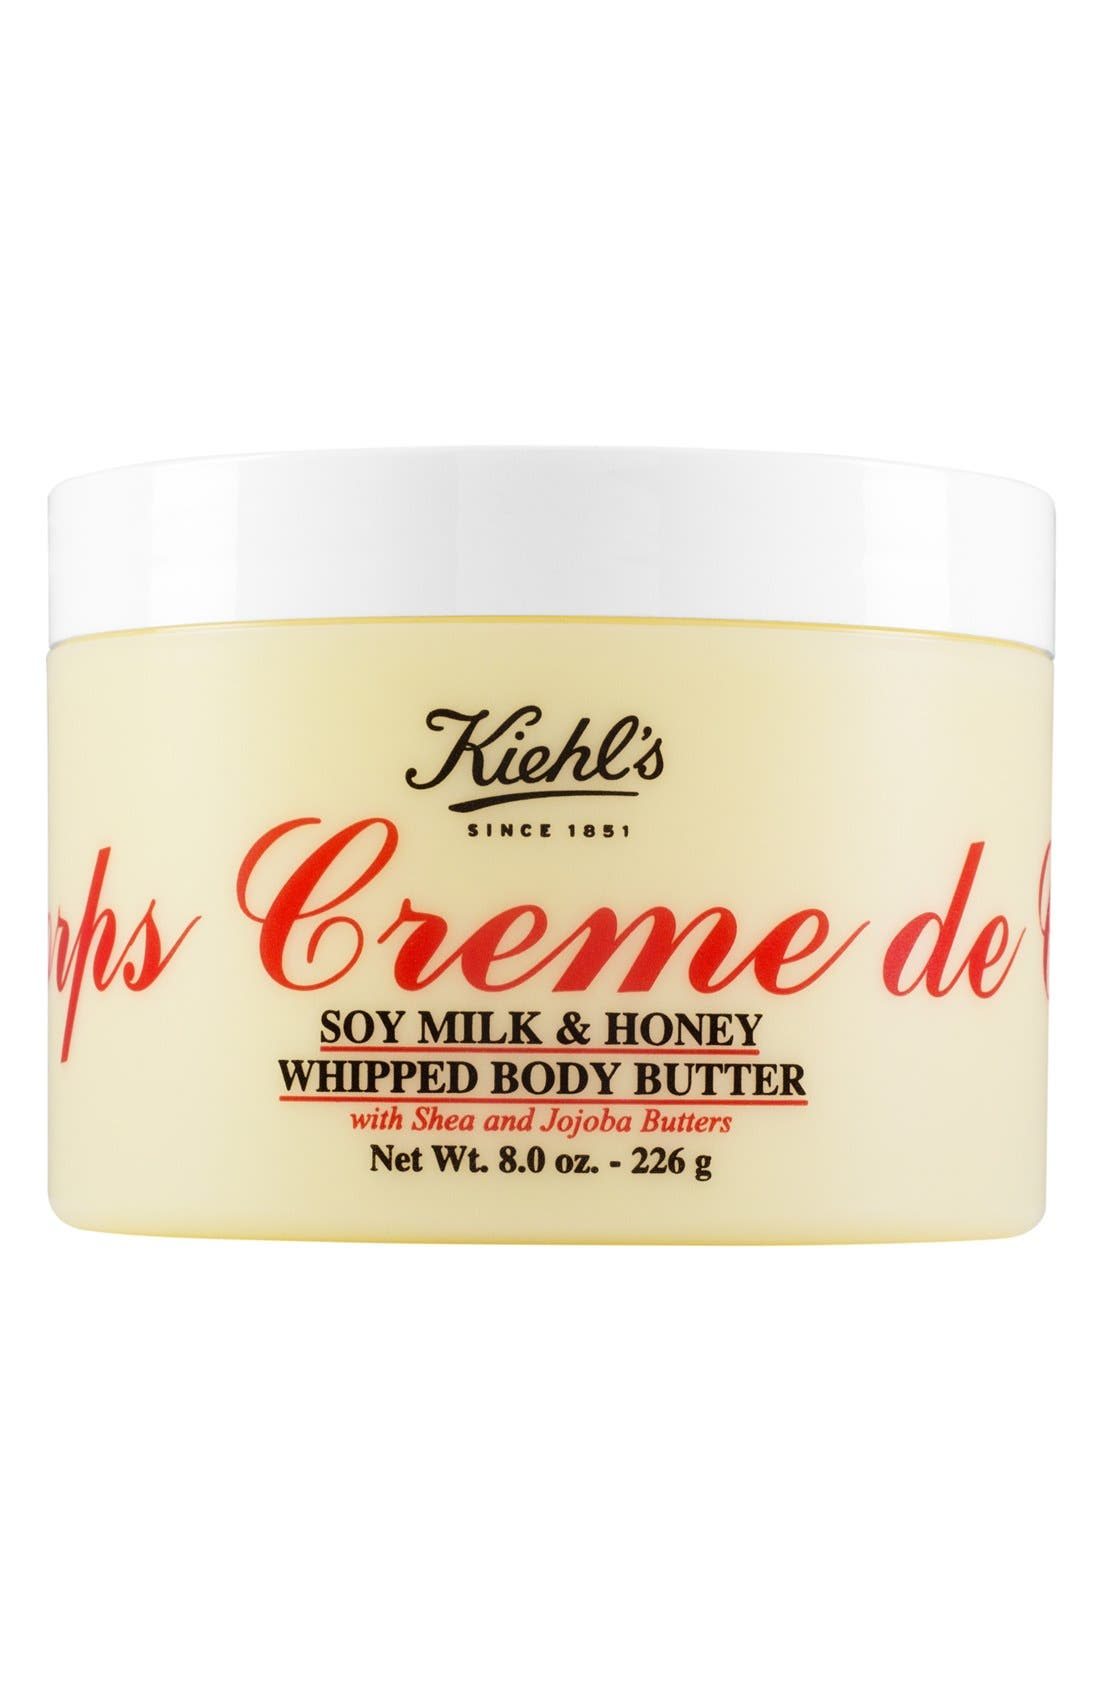 'Creme de Corps' Soy Milk & Honey Whipped Body Butter,                             Main thumbnail 1, color,                             NO COLOR